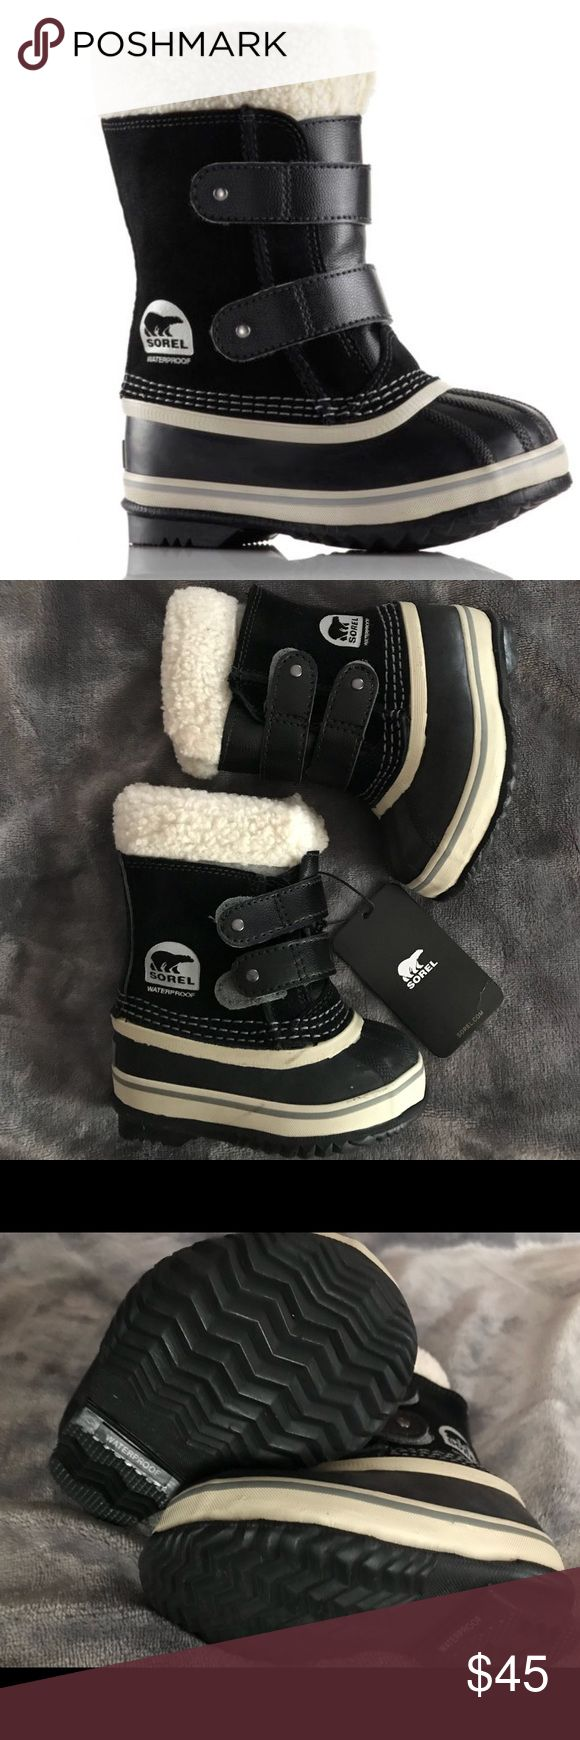 NWT Toddler Sorel Boots Sz 5 New with tags. No box. Little toddler Boys Sz 5 1964 PAC Strap Boots by Sorel. Minor scratches from moving around. Please see pics for more details. Currently retailing online for $70. Sorel Shoes Rain & Snow Boots